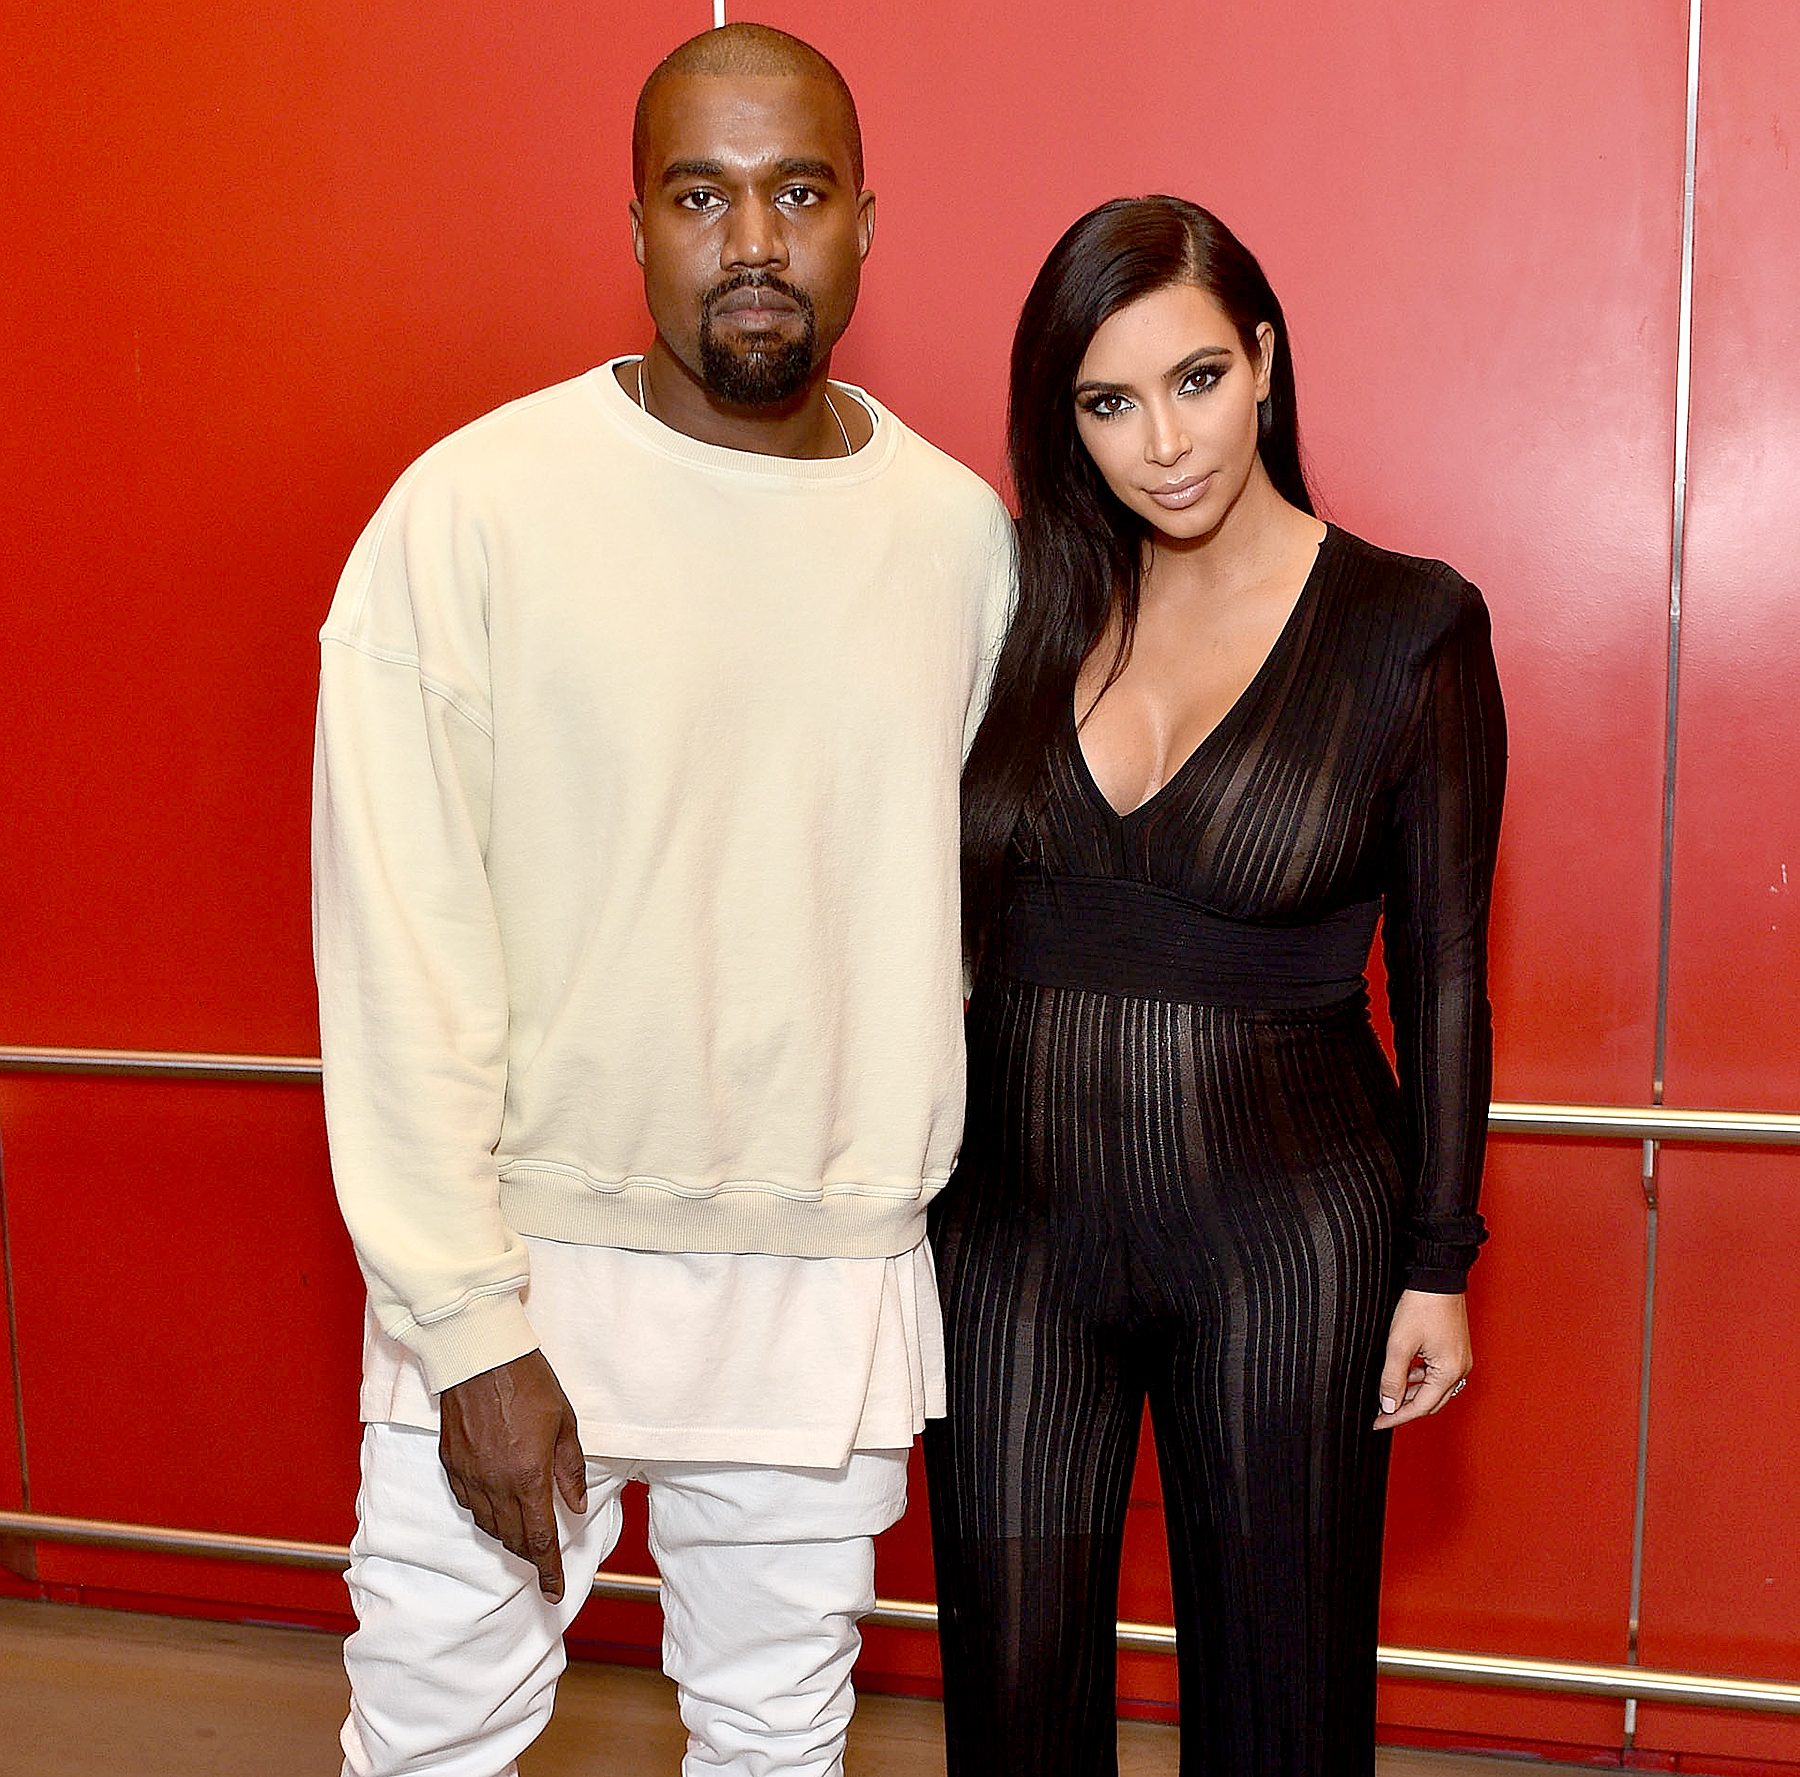 Image result for Kim Kardashian and Kanye